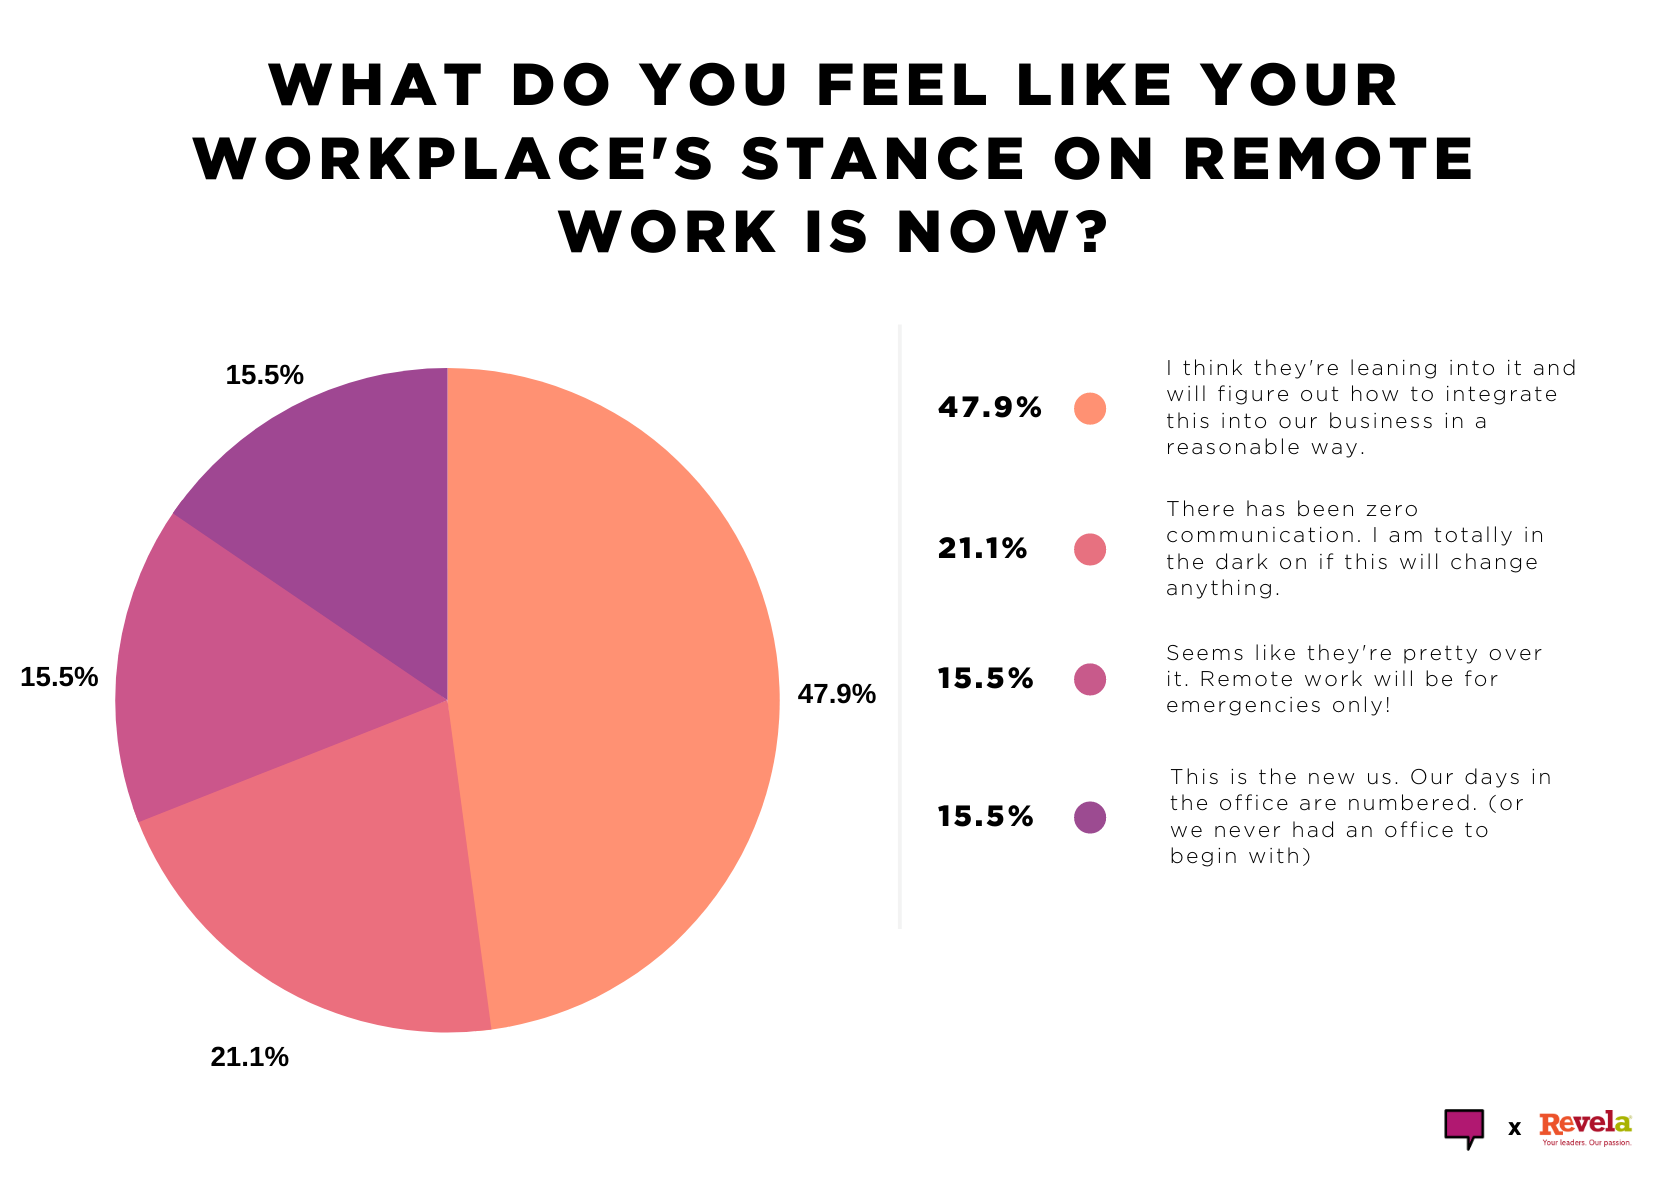 What do you feel like your workplace's stance on remote work is now?